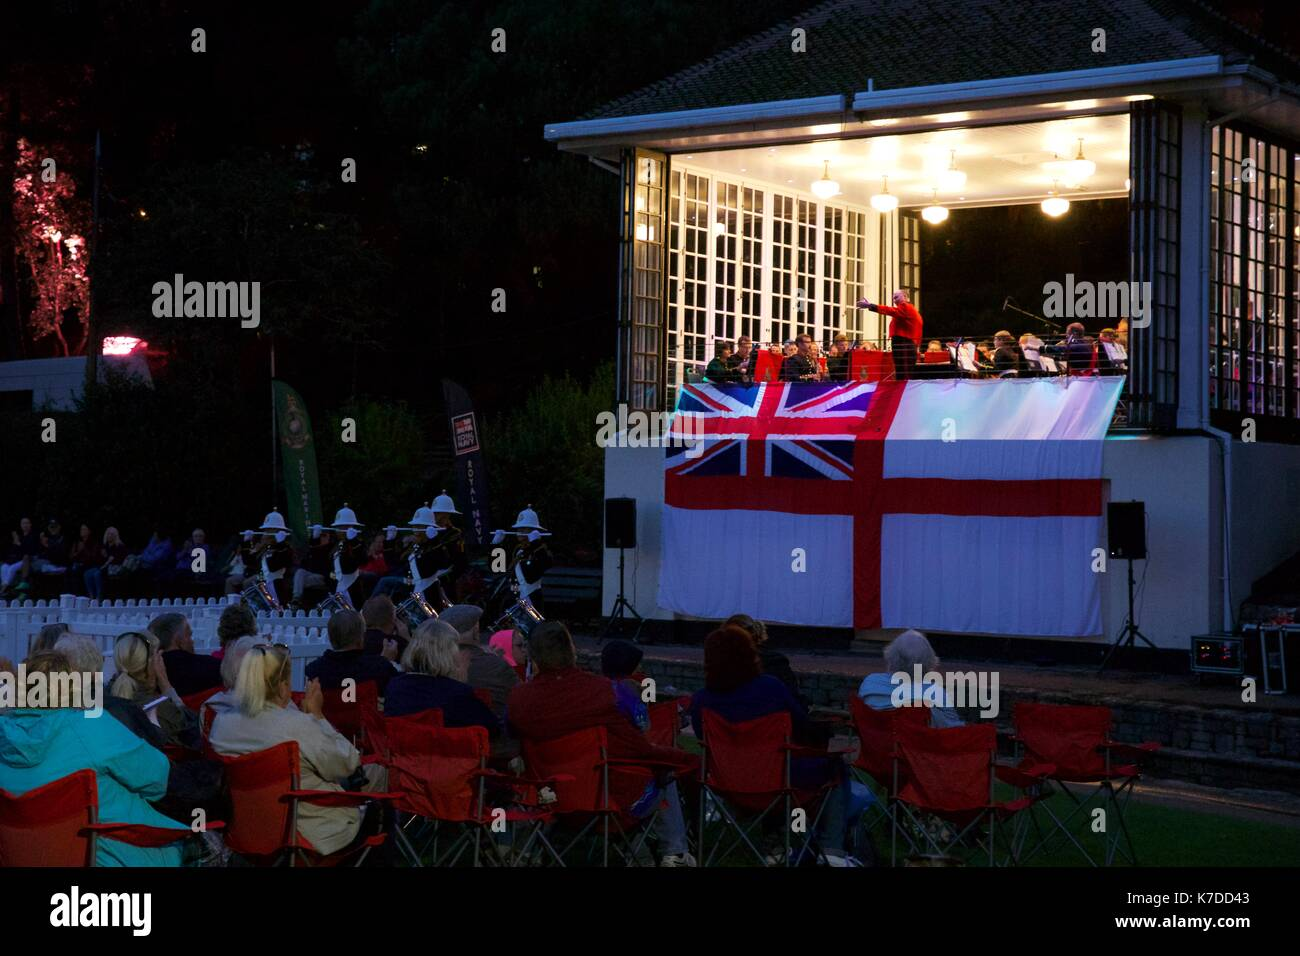 The Band of Her Majesty's Royal Marines HMS Collingwood performing at the Bournemouth bandstand located in the lower gardens - Stock Image